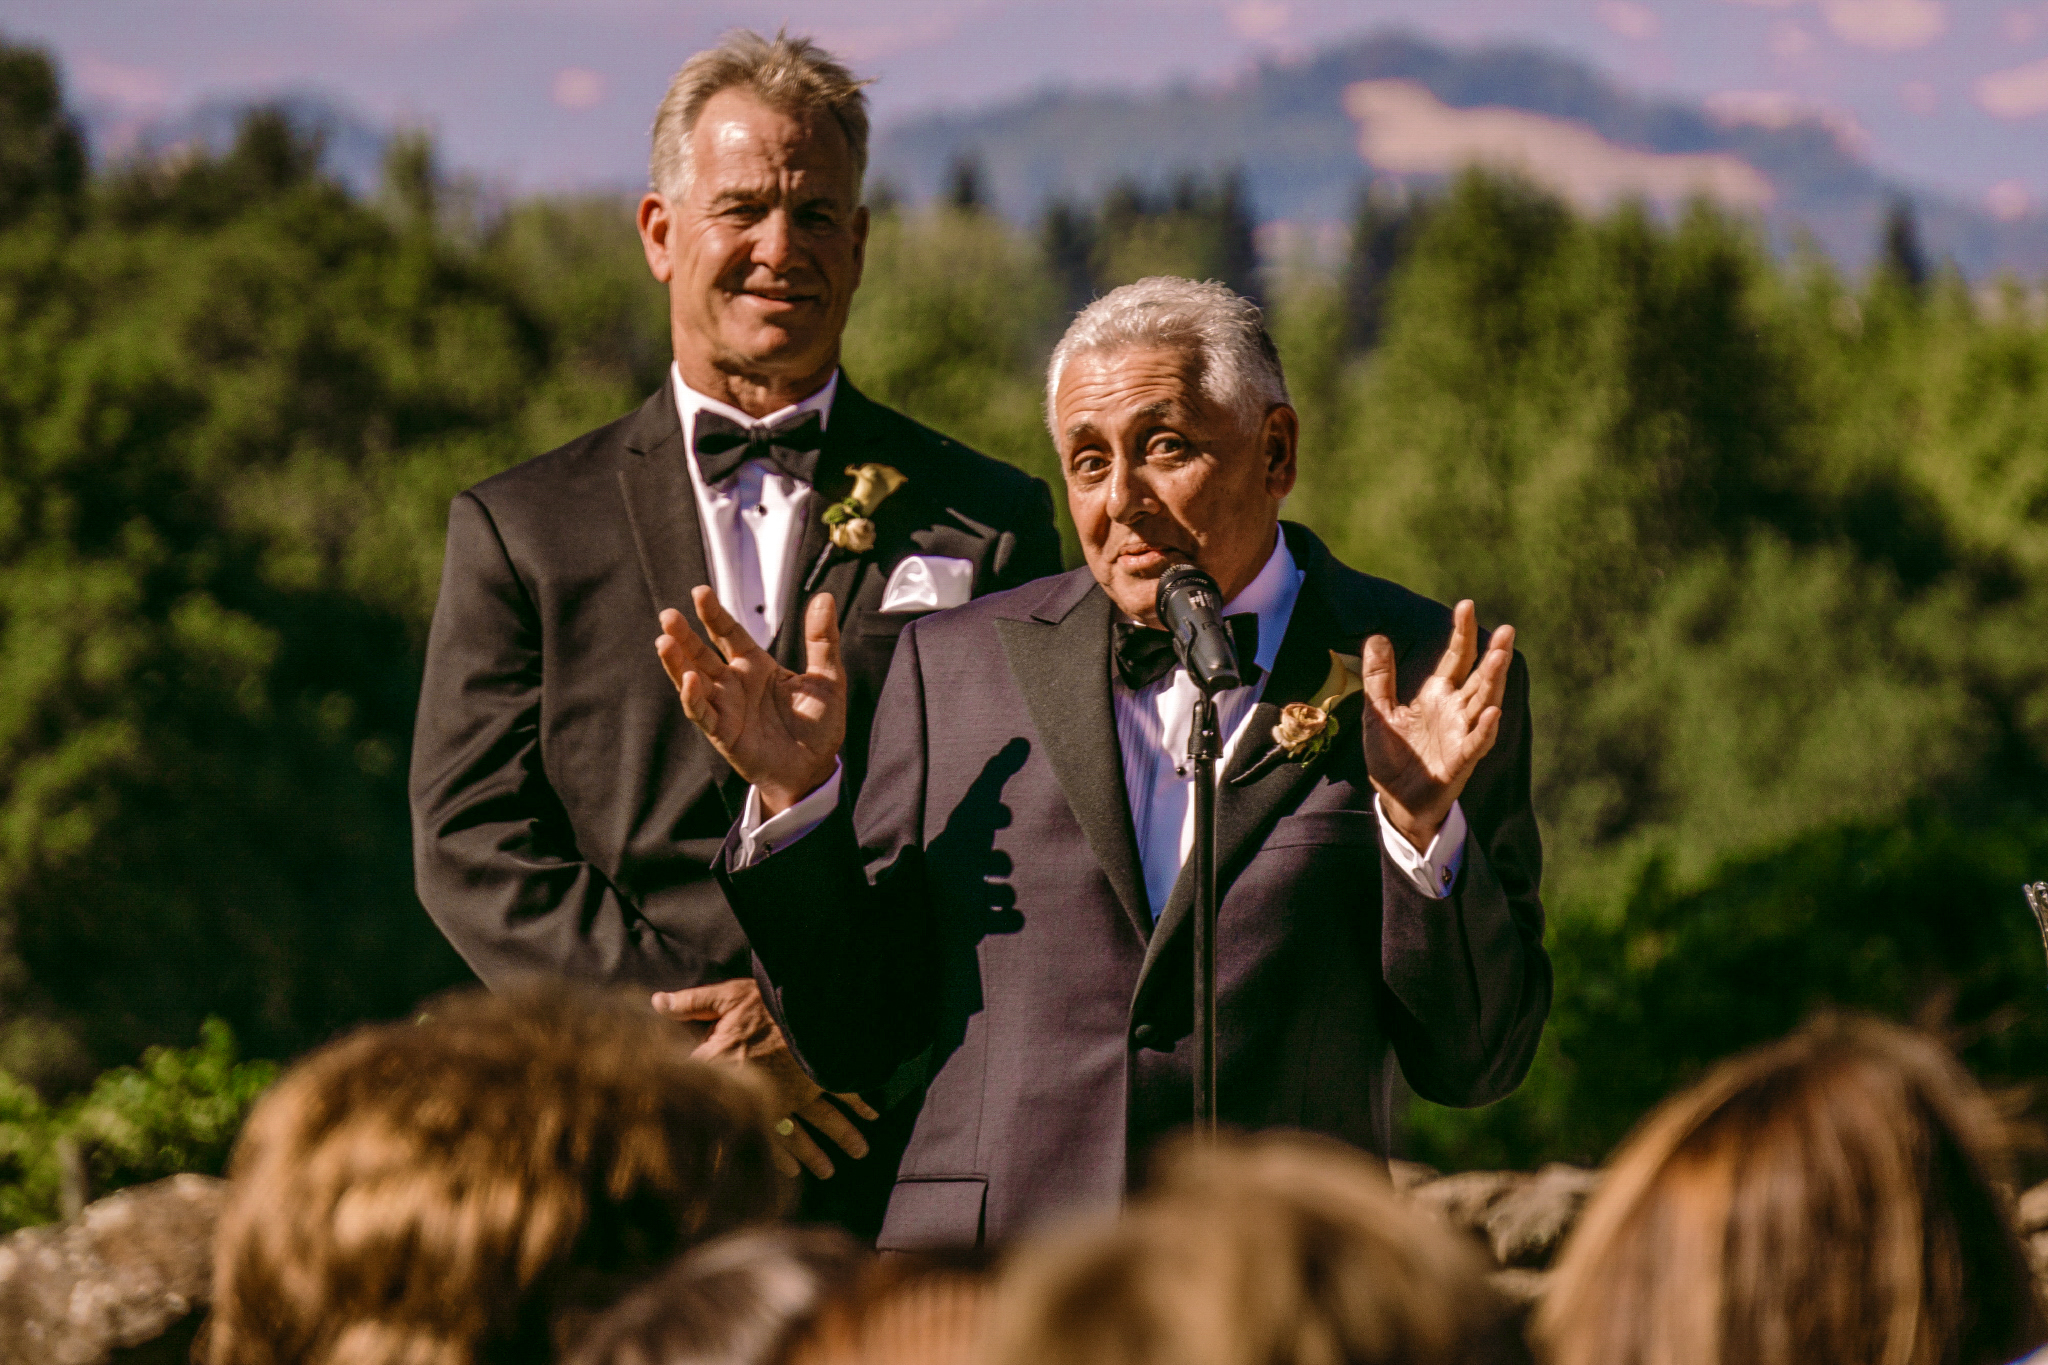 san diego wedding   photographer | man standing with hands up while speaking with mic